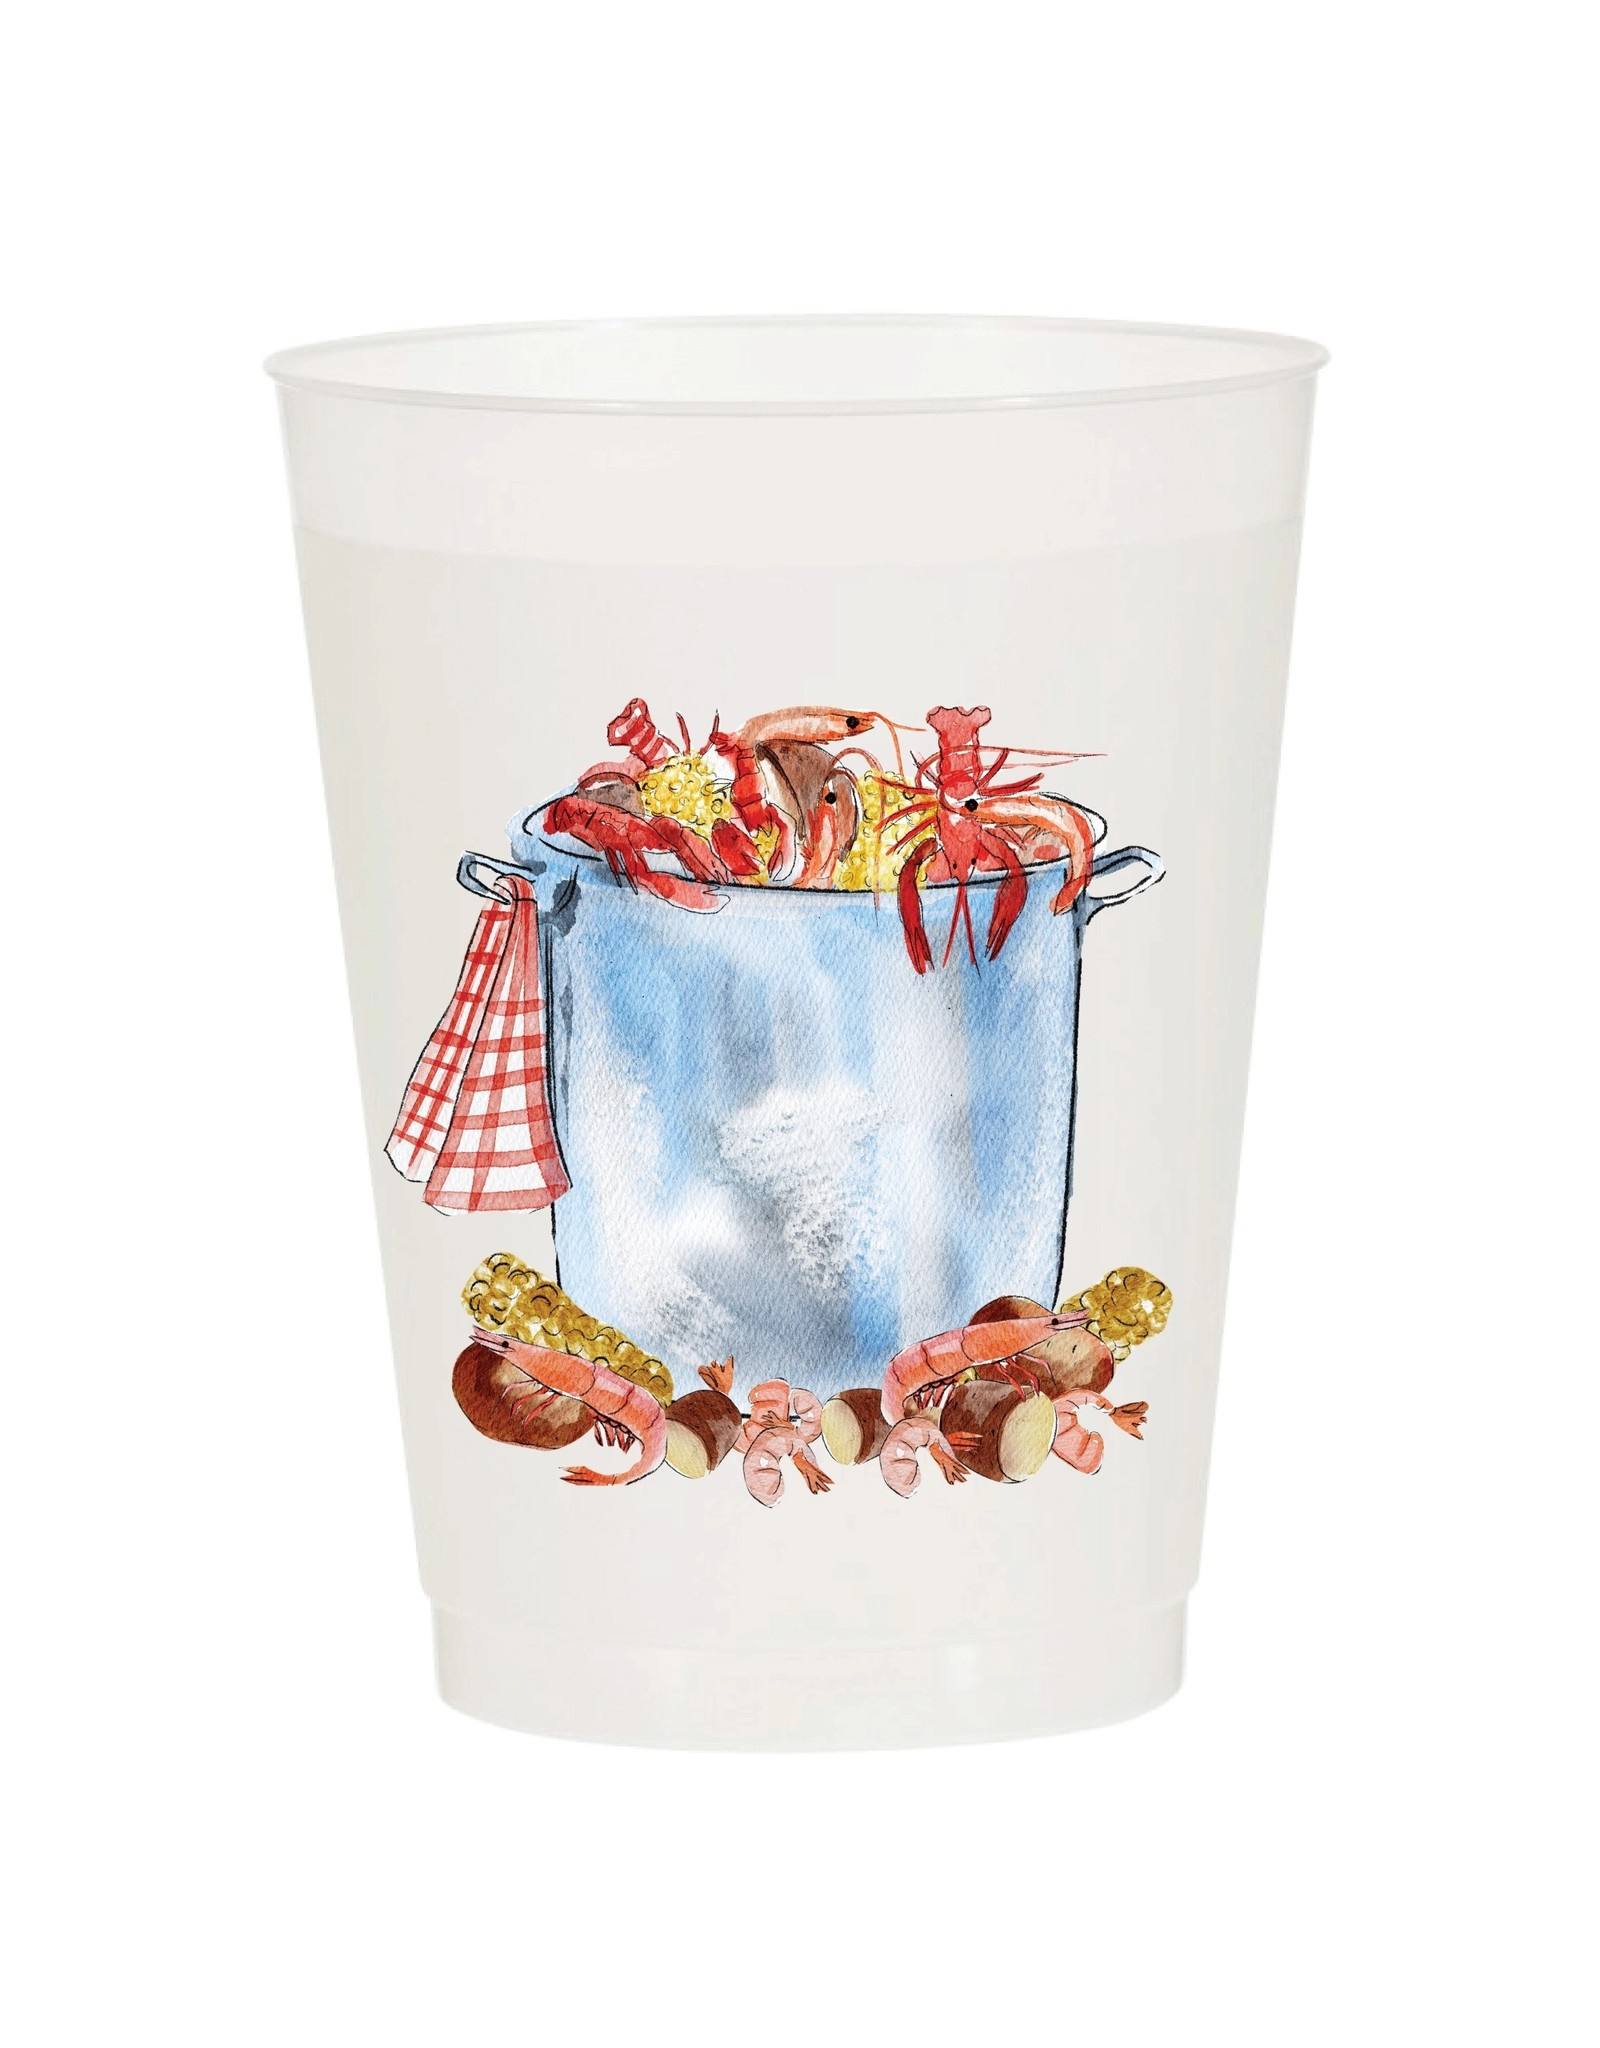 Sip Hip Hooray Low Country Boil Pot Watercolor Reusable Cups - Set of 10